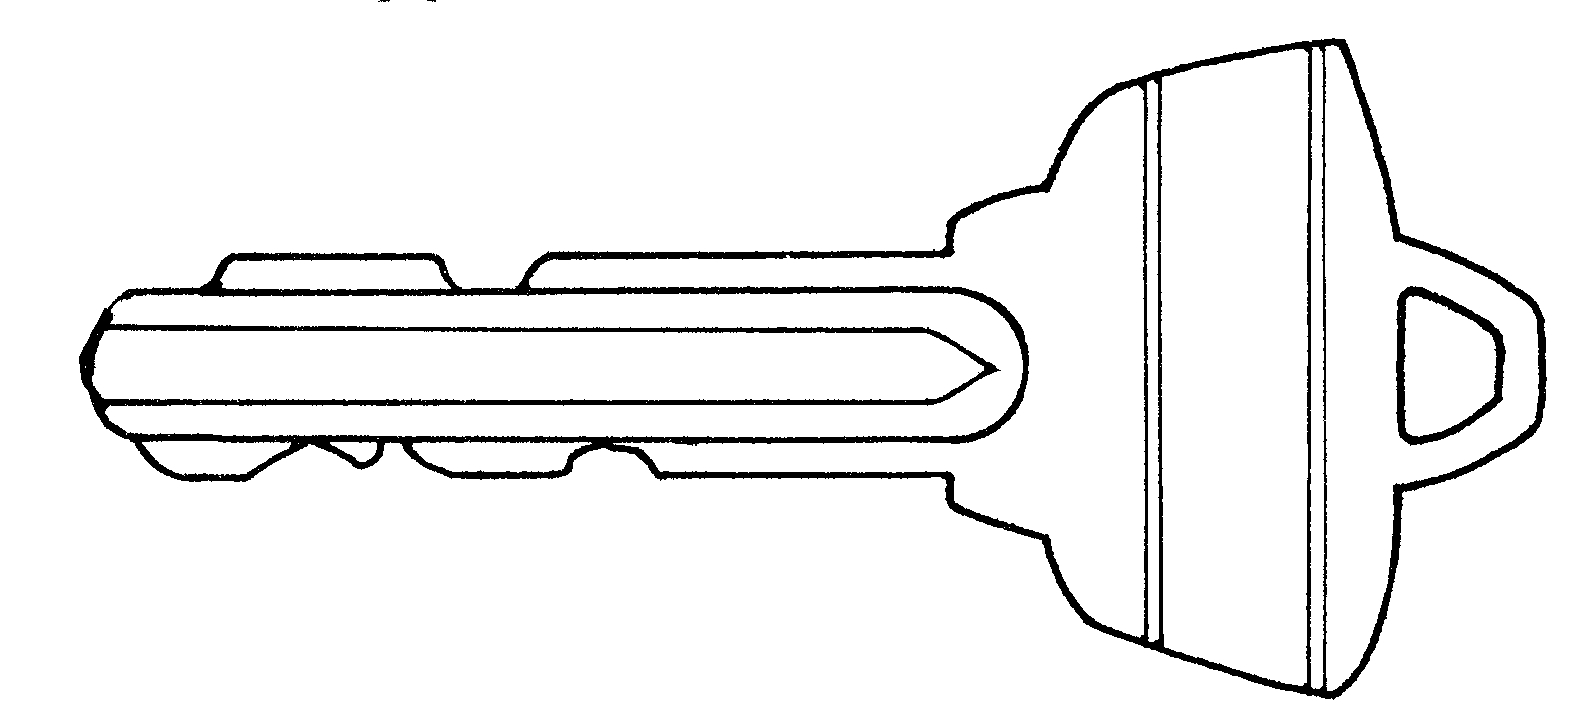 Key clipart black and white Beautiful s of key clip art.